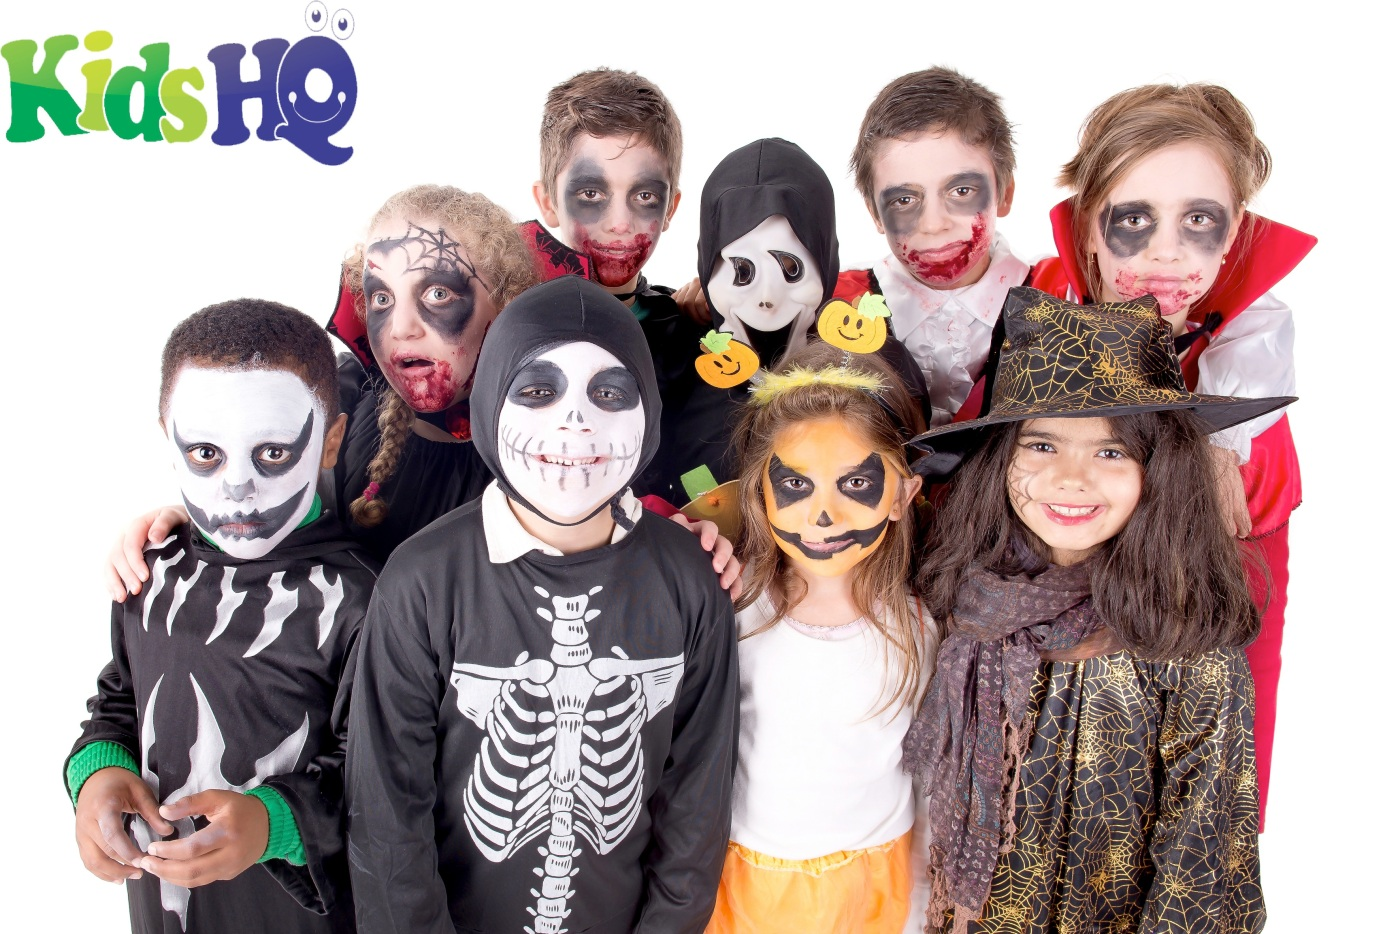 Halloween kids hq.jpg